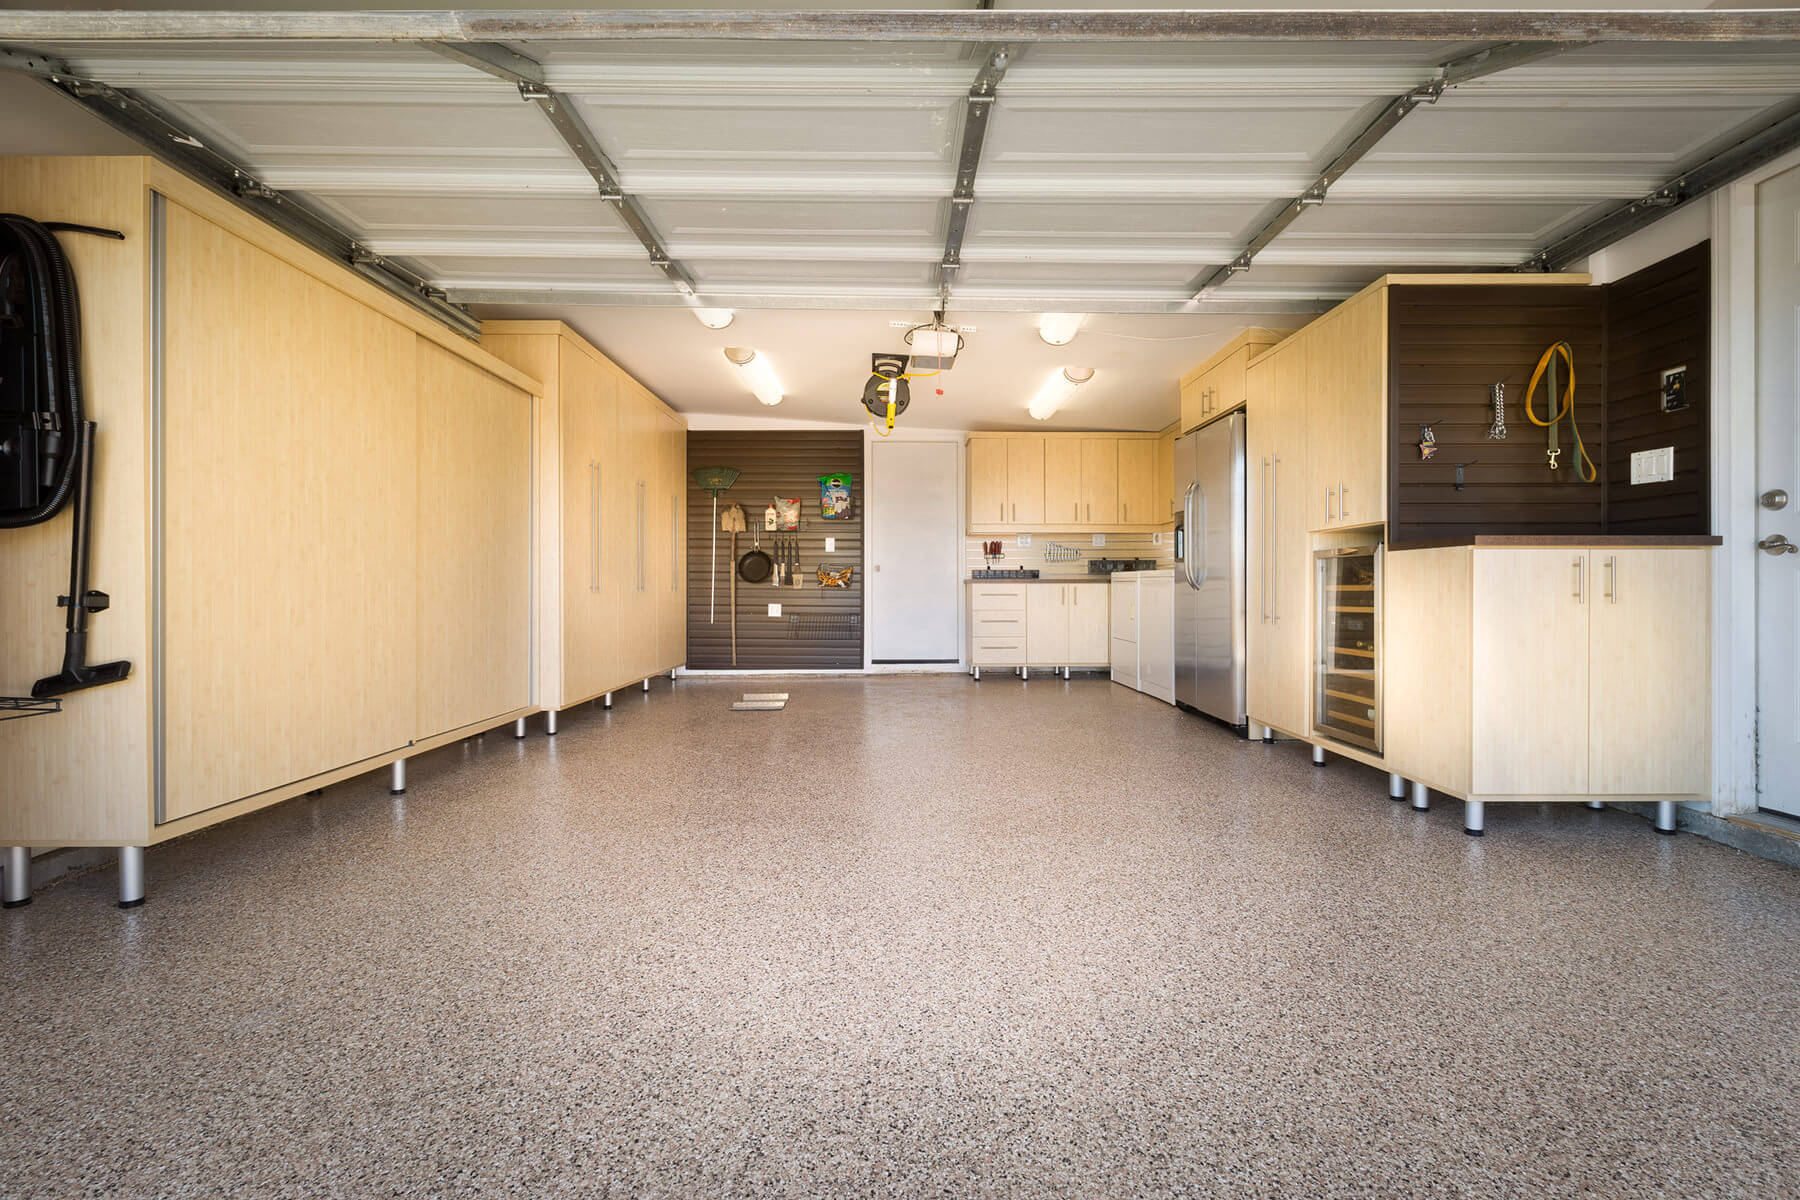 This expansive garage feature large maple melamine cabinets on both sides that can be used for embedding wall racks where you can hang your tools onto as well as concavities between the cabinets where a refrigerator can be placed.